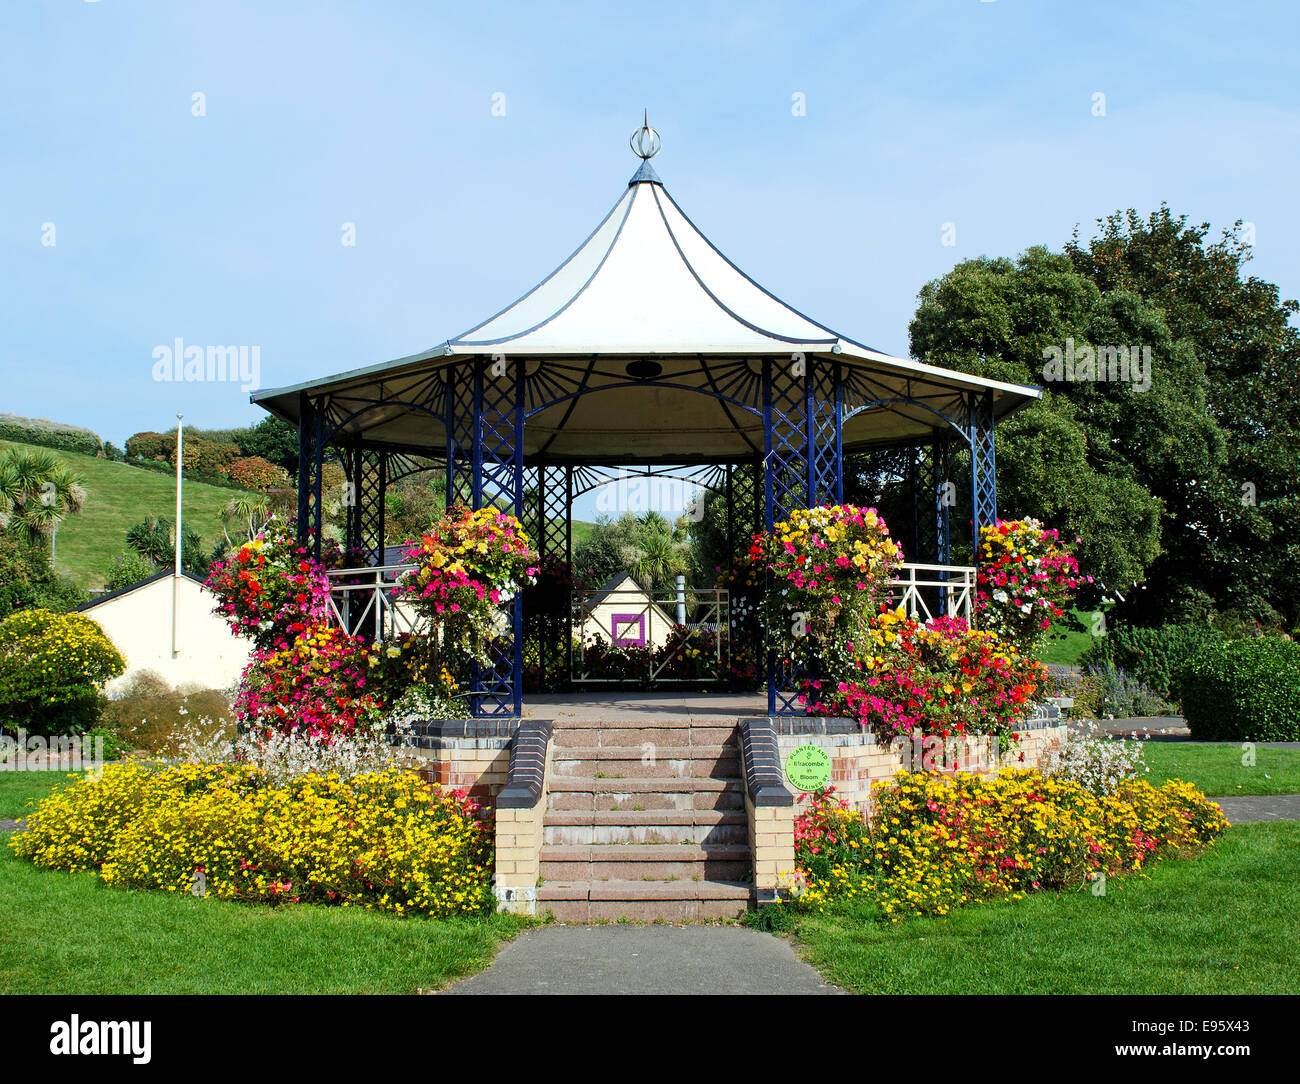 The Bandstand in Runnymede gardens, Ilfracombe, Devon, UK - Stock Image